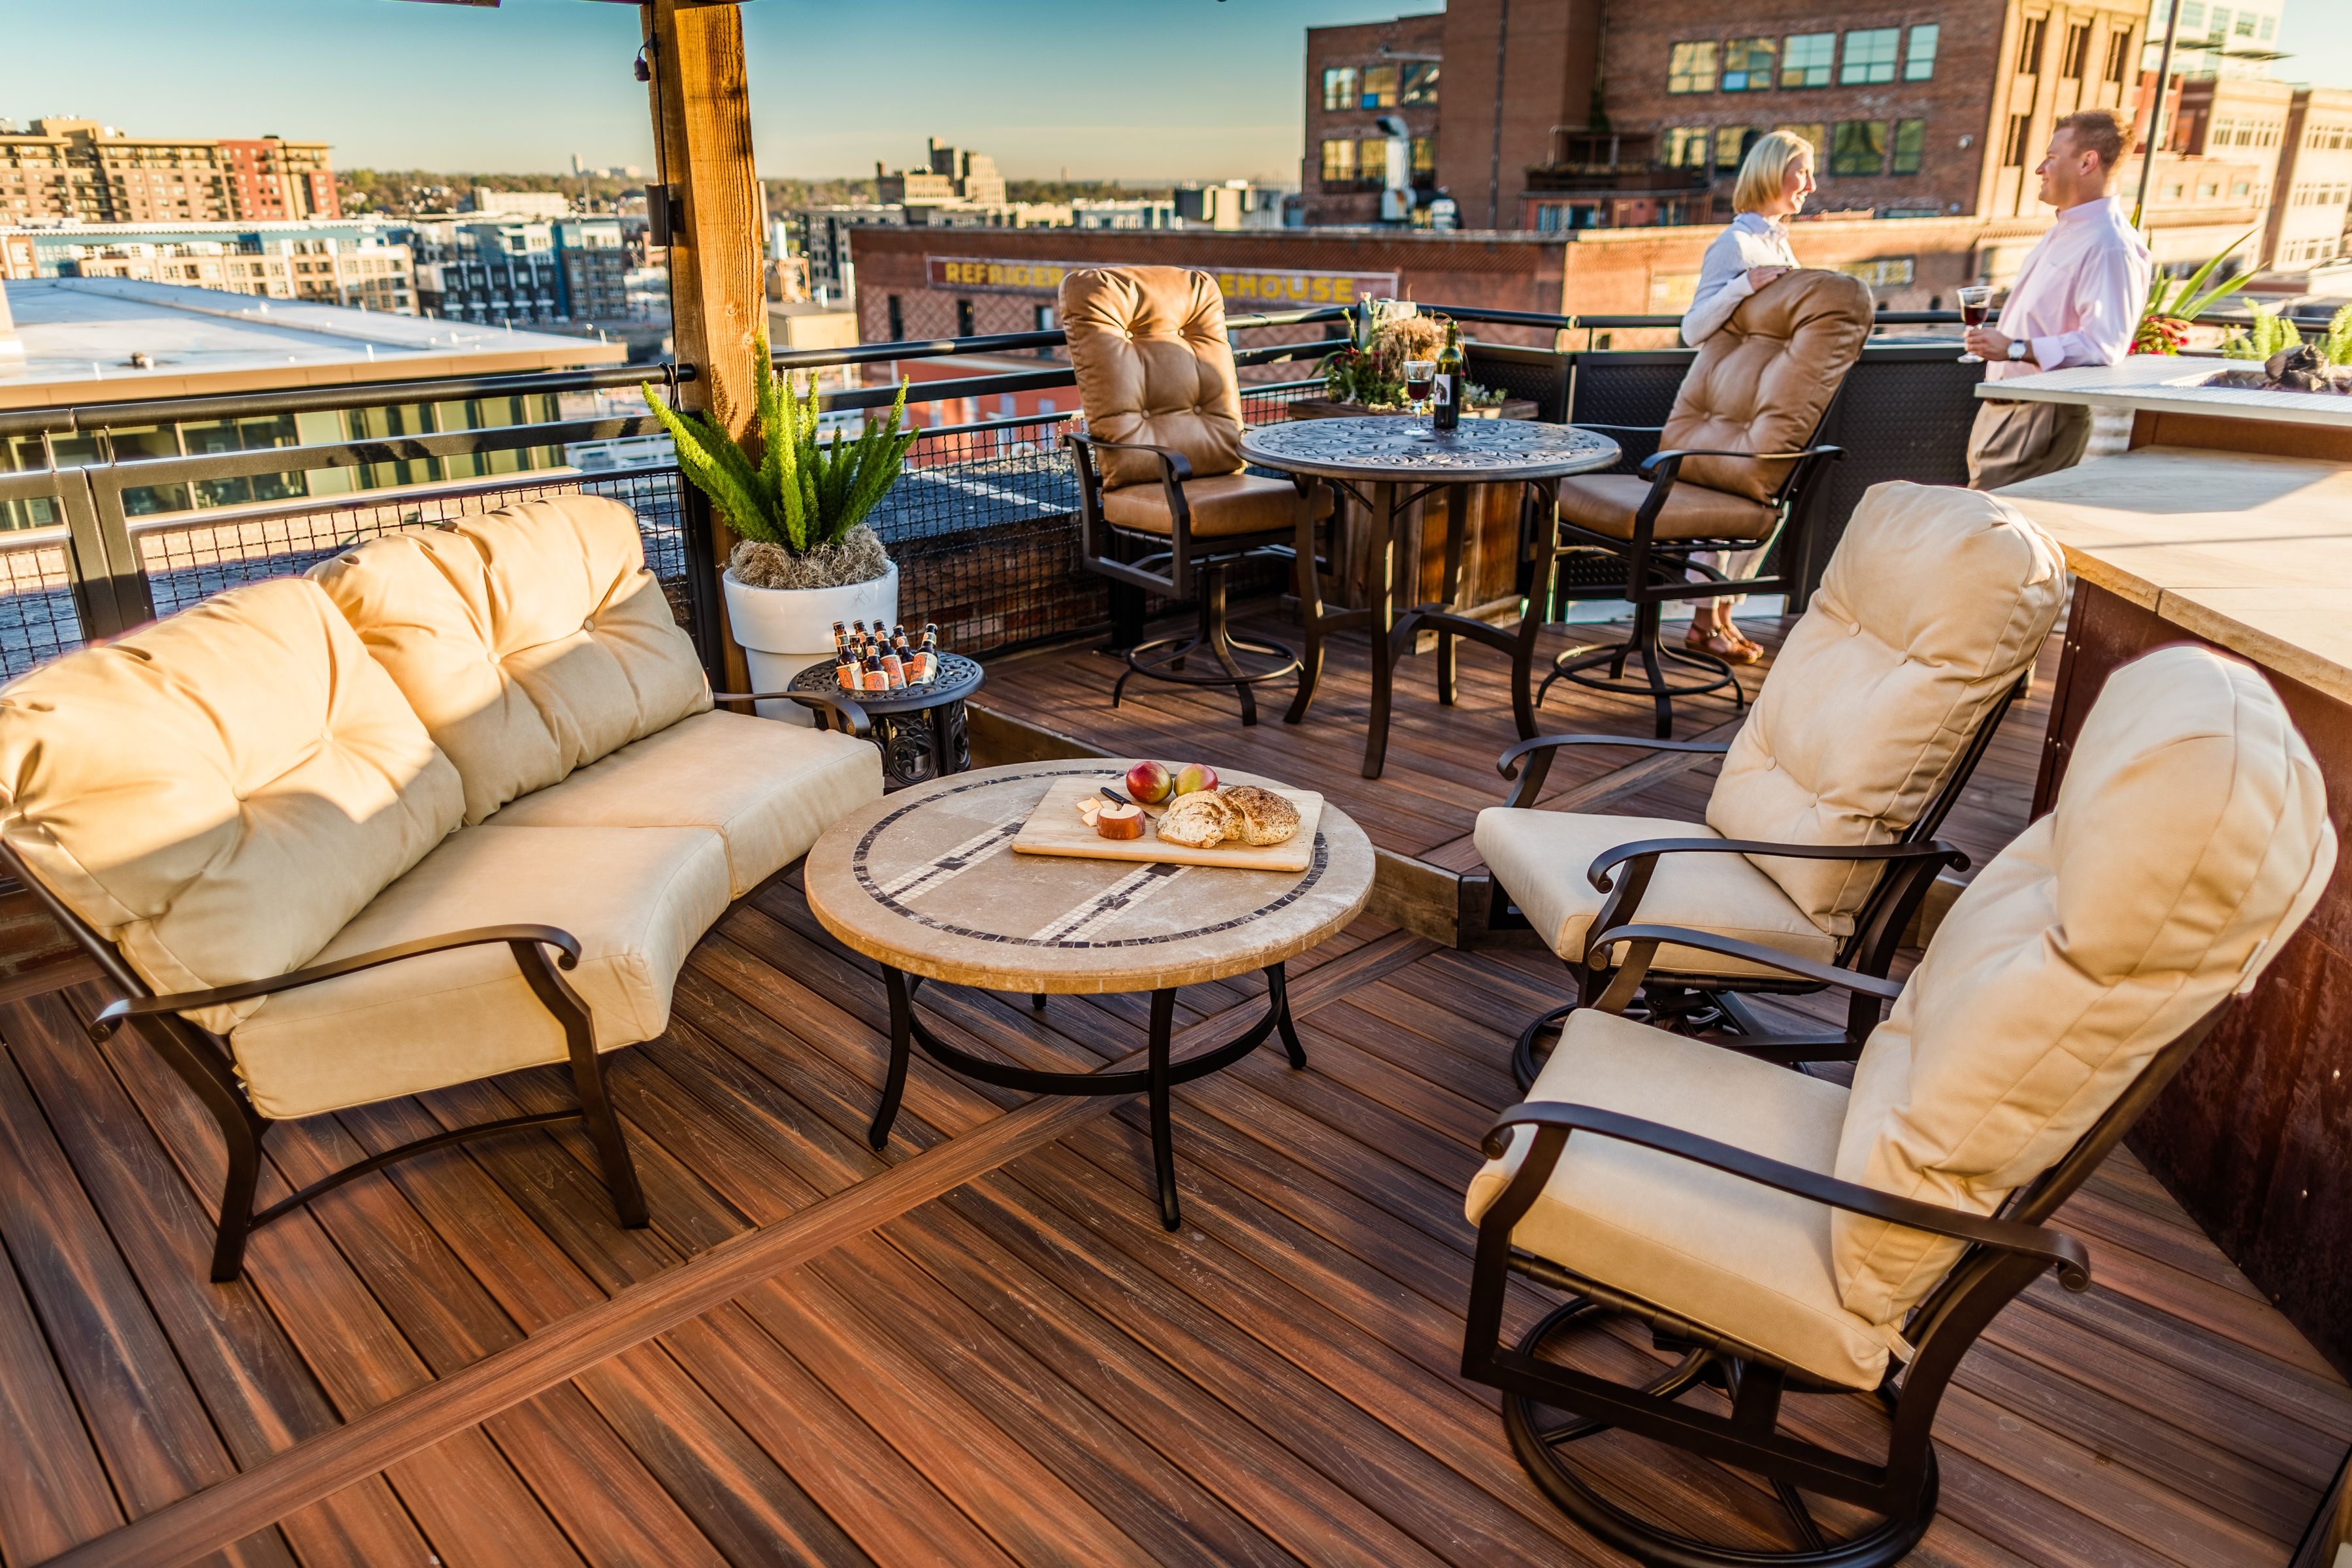 Gorgeous rooftop patio overlooking downtown Denver ...